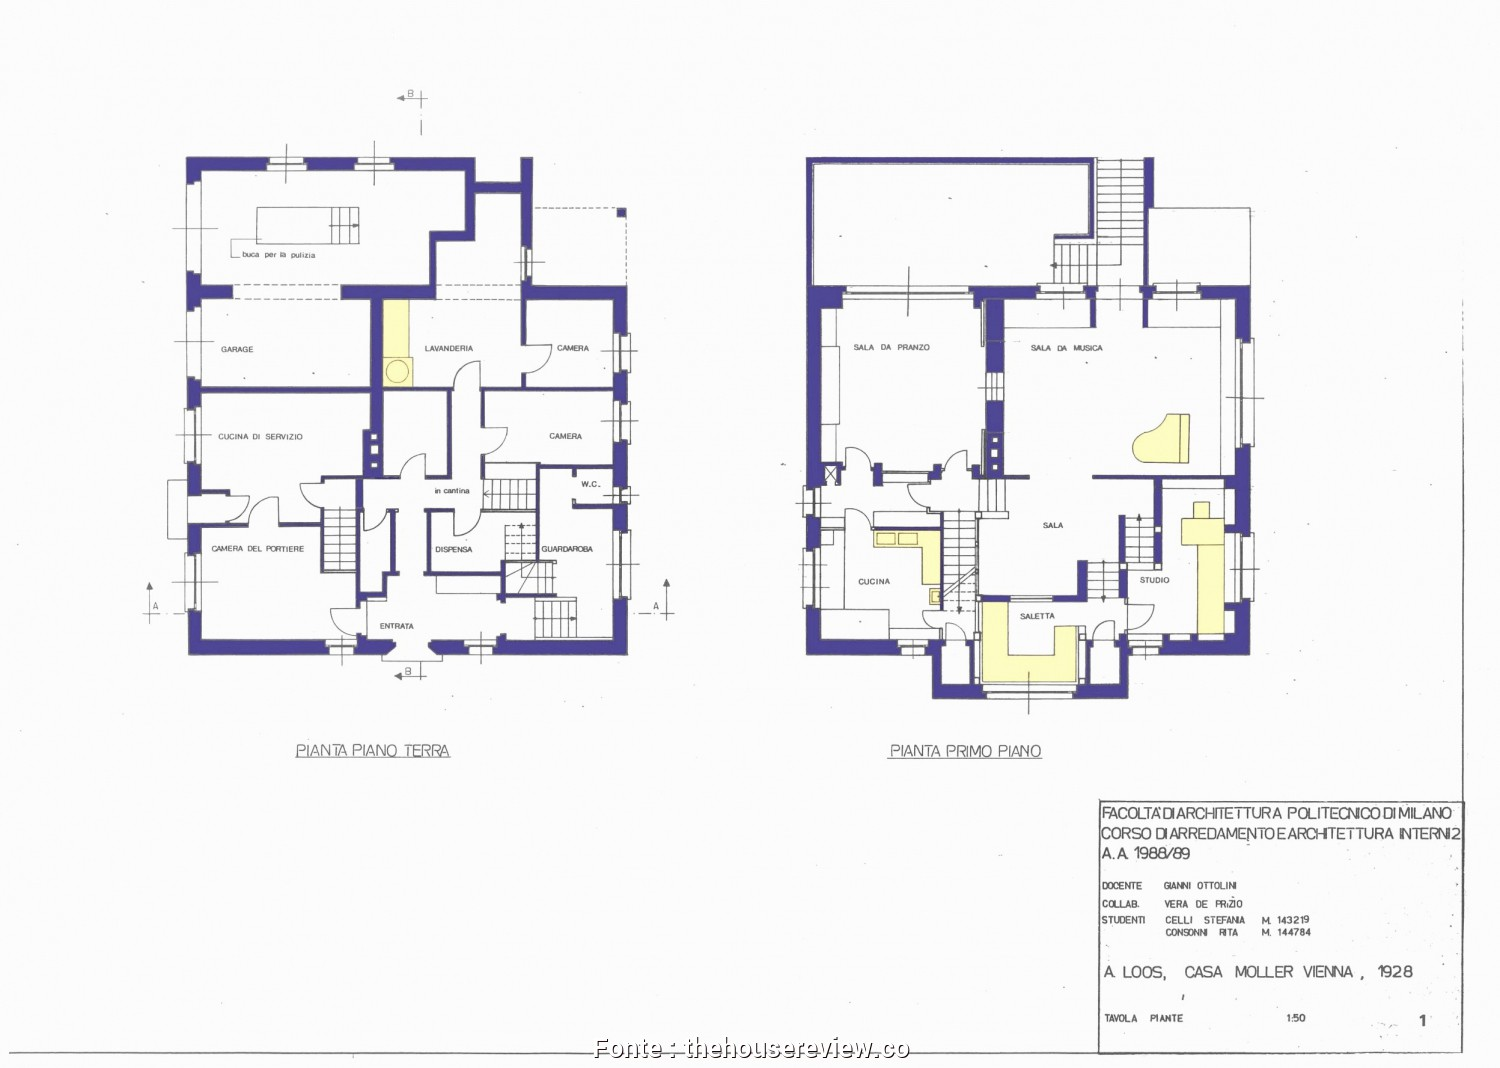 Utensili Da Cucina Dwg, Minimalista Free Awesome Free Floor Plans Unique Design Plan D House, Floor Plan With Disegno Cucine